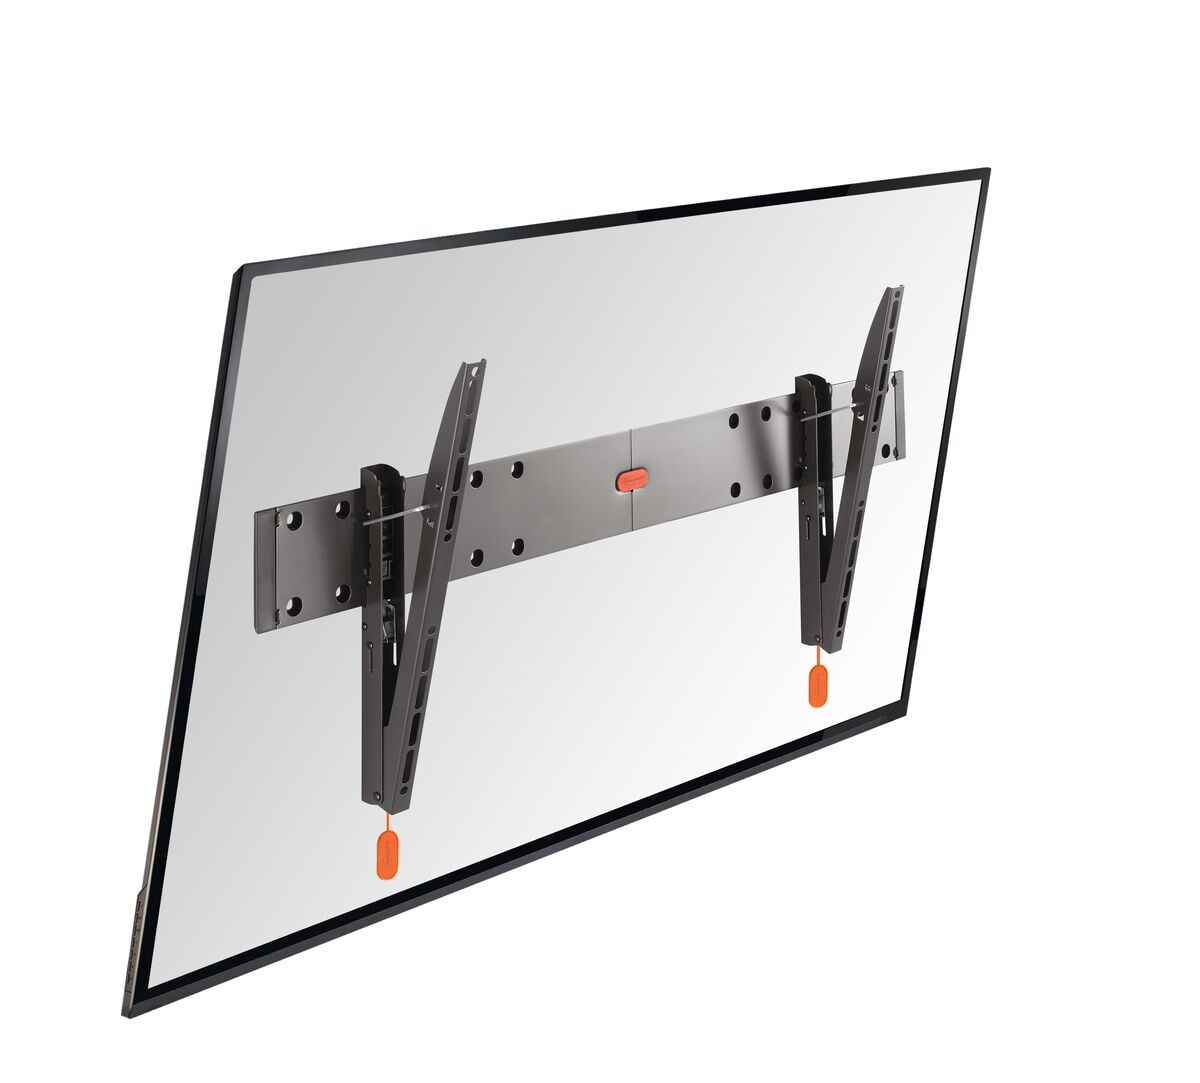 Vogel's BASE 15 L Tilting TV Wall Mount - Suitable for 40 up to 65 inch TVs up to 45 kg - Tilt up to 15° - Product